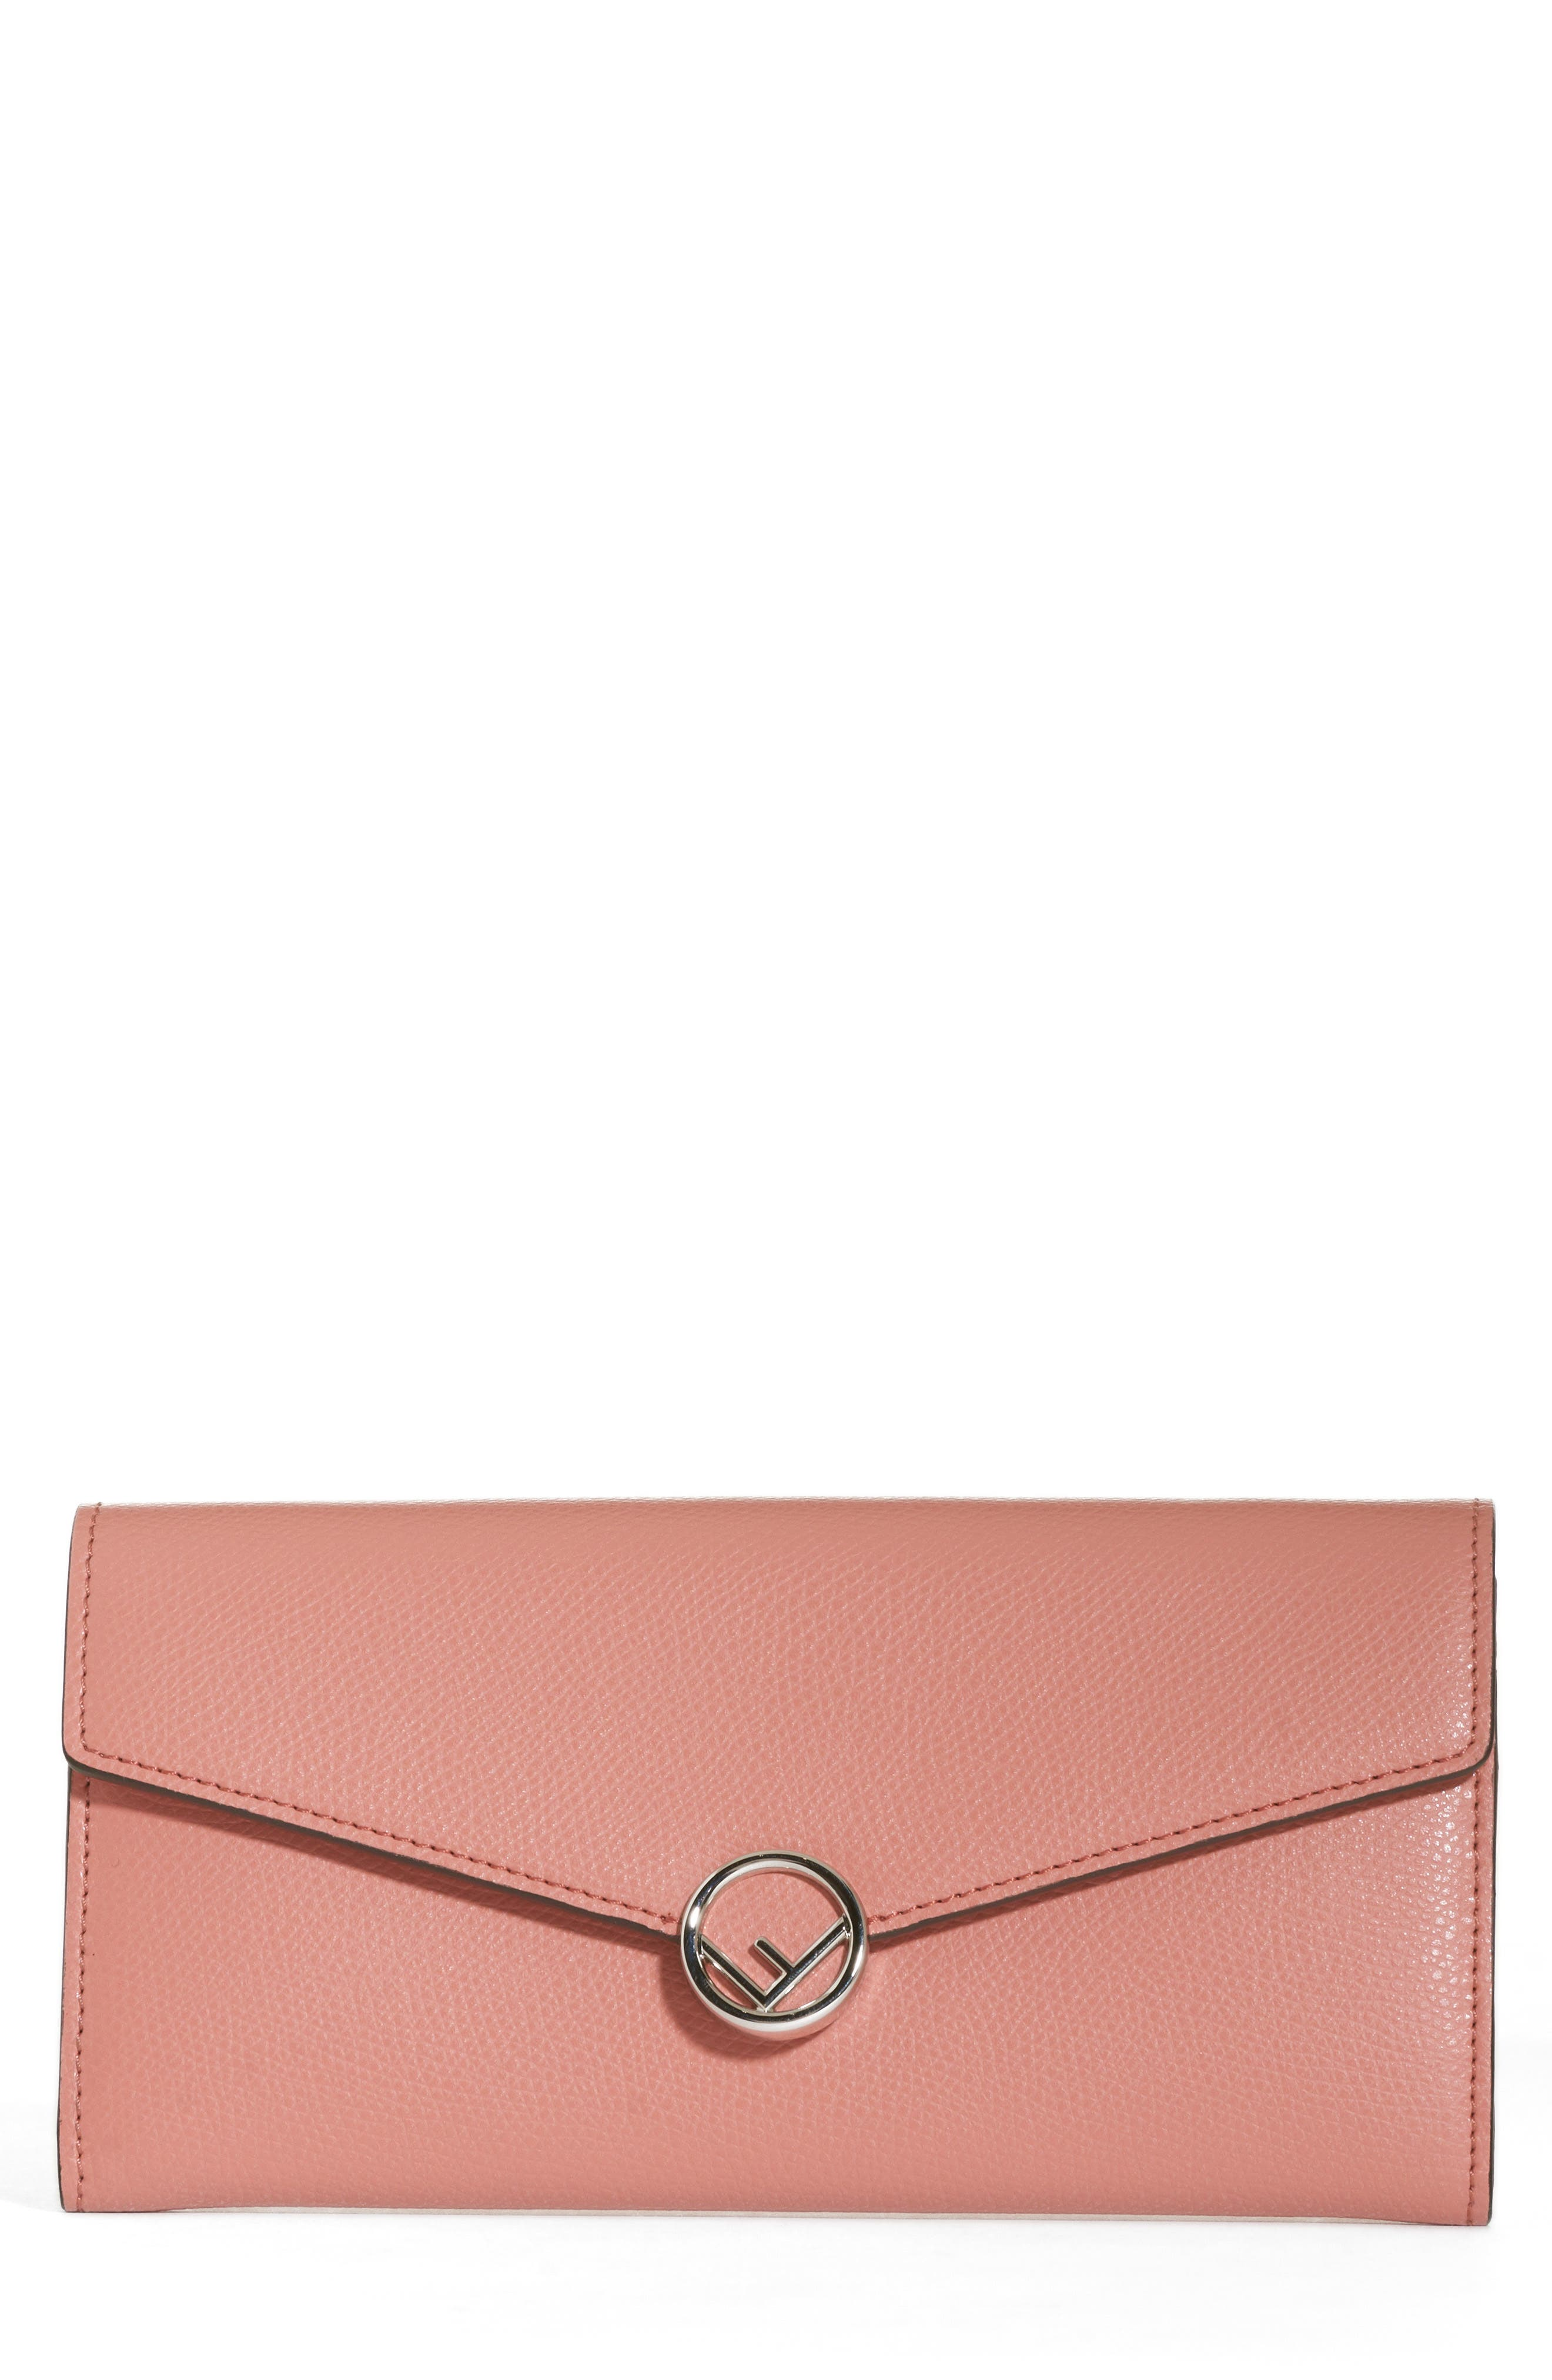 Logo Calfskin Leather Continental Wallet on a Chain,                         Main,                         color, MACARON/ PALLADIO